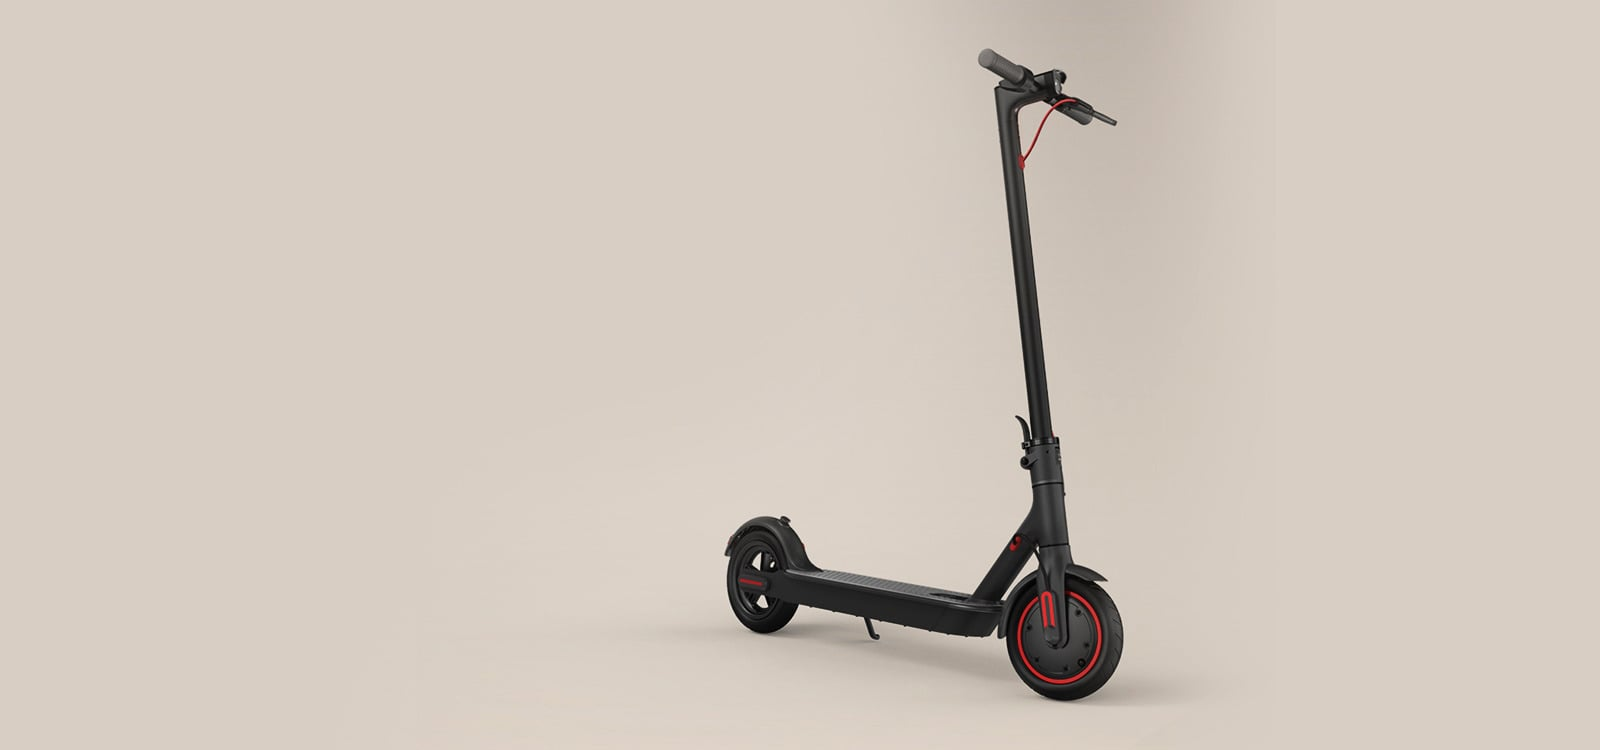 Электросамокат Xiaomi Mijia Electric Scooter M365 PRO